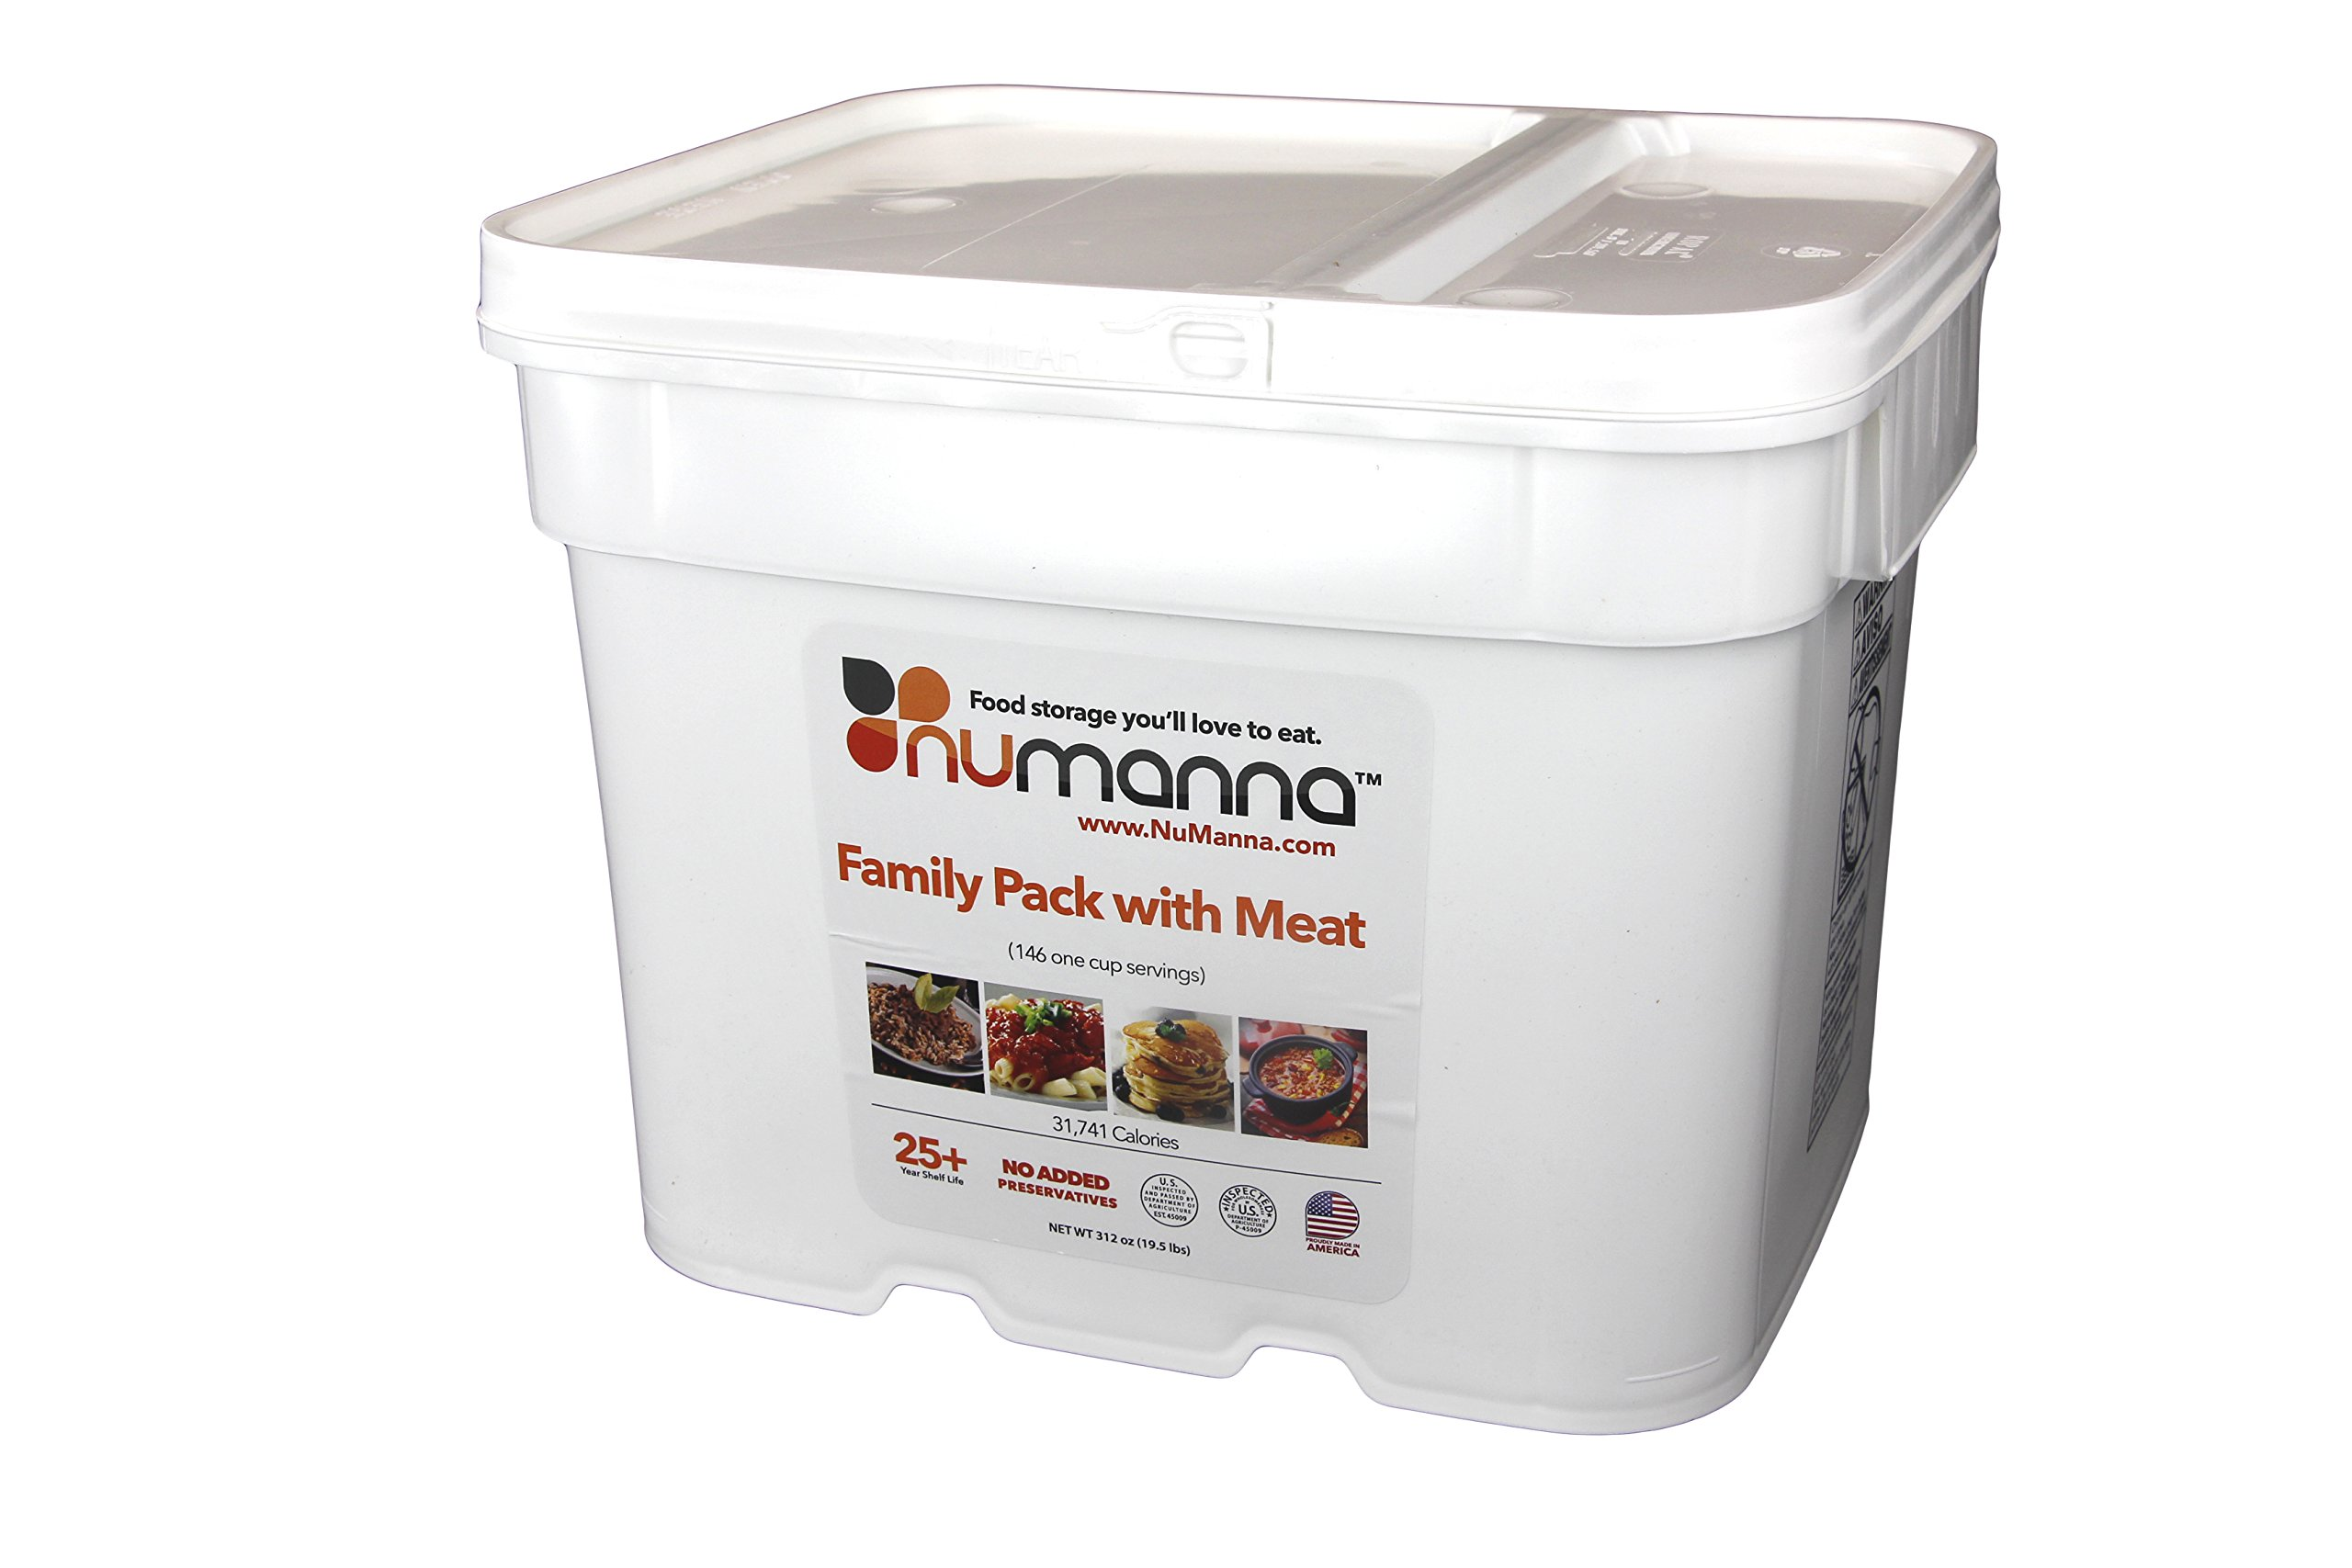 NuManna Family Pack w/ Meat 146 Servings, Emergency Survival Food Storage Kit, Separate Rations, in a Bucket, 25 Plus Year Shelf Life, GMO-Free by NuManna